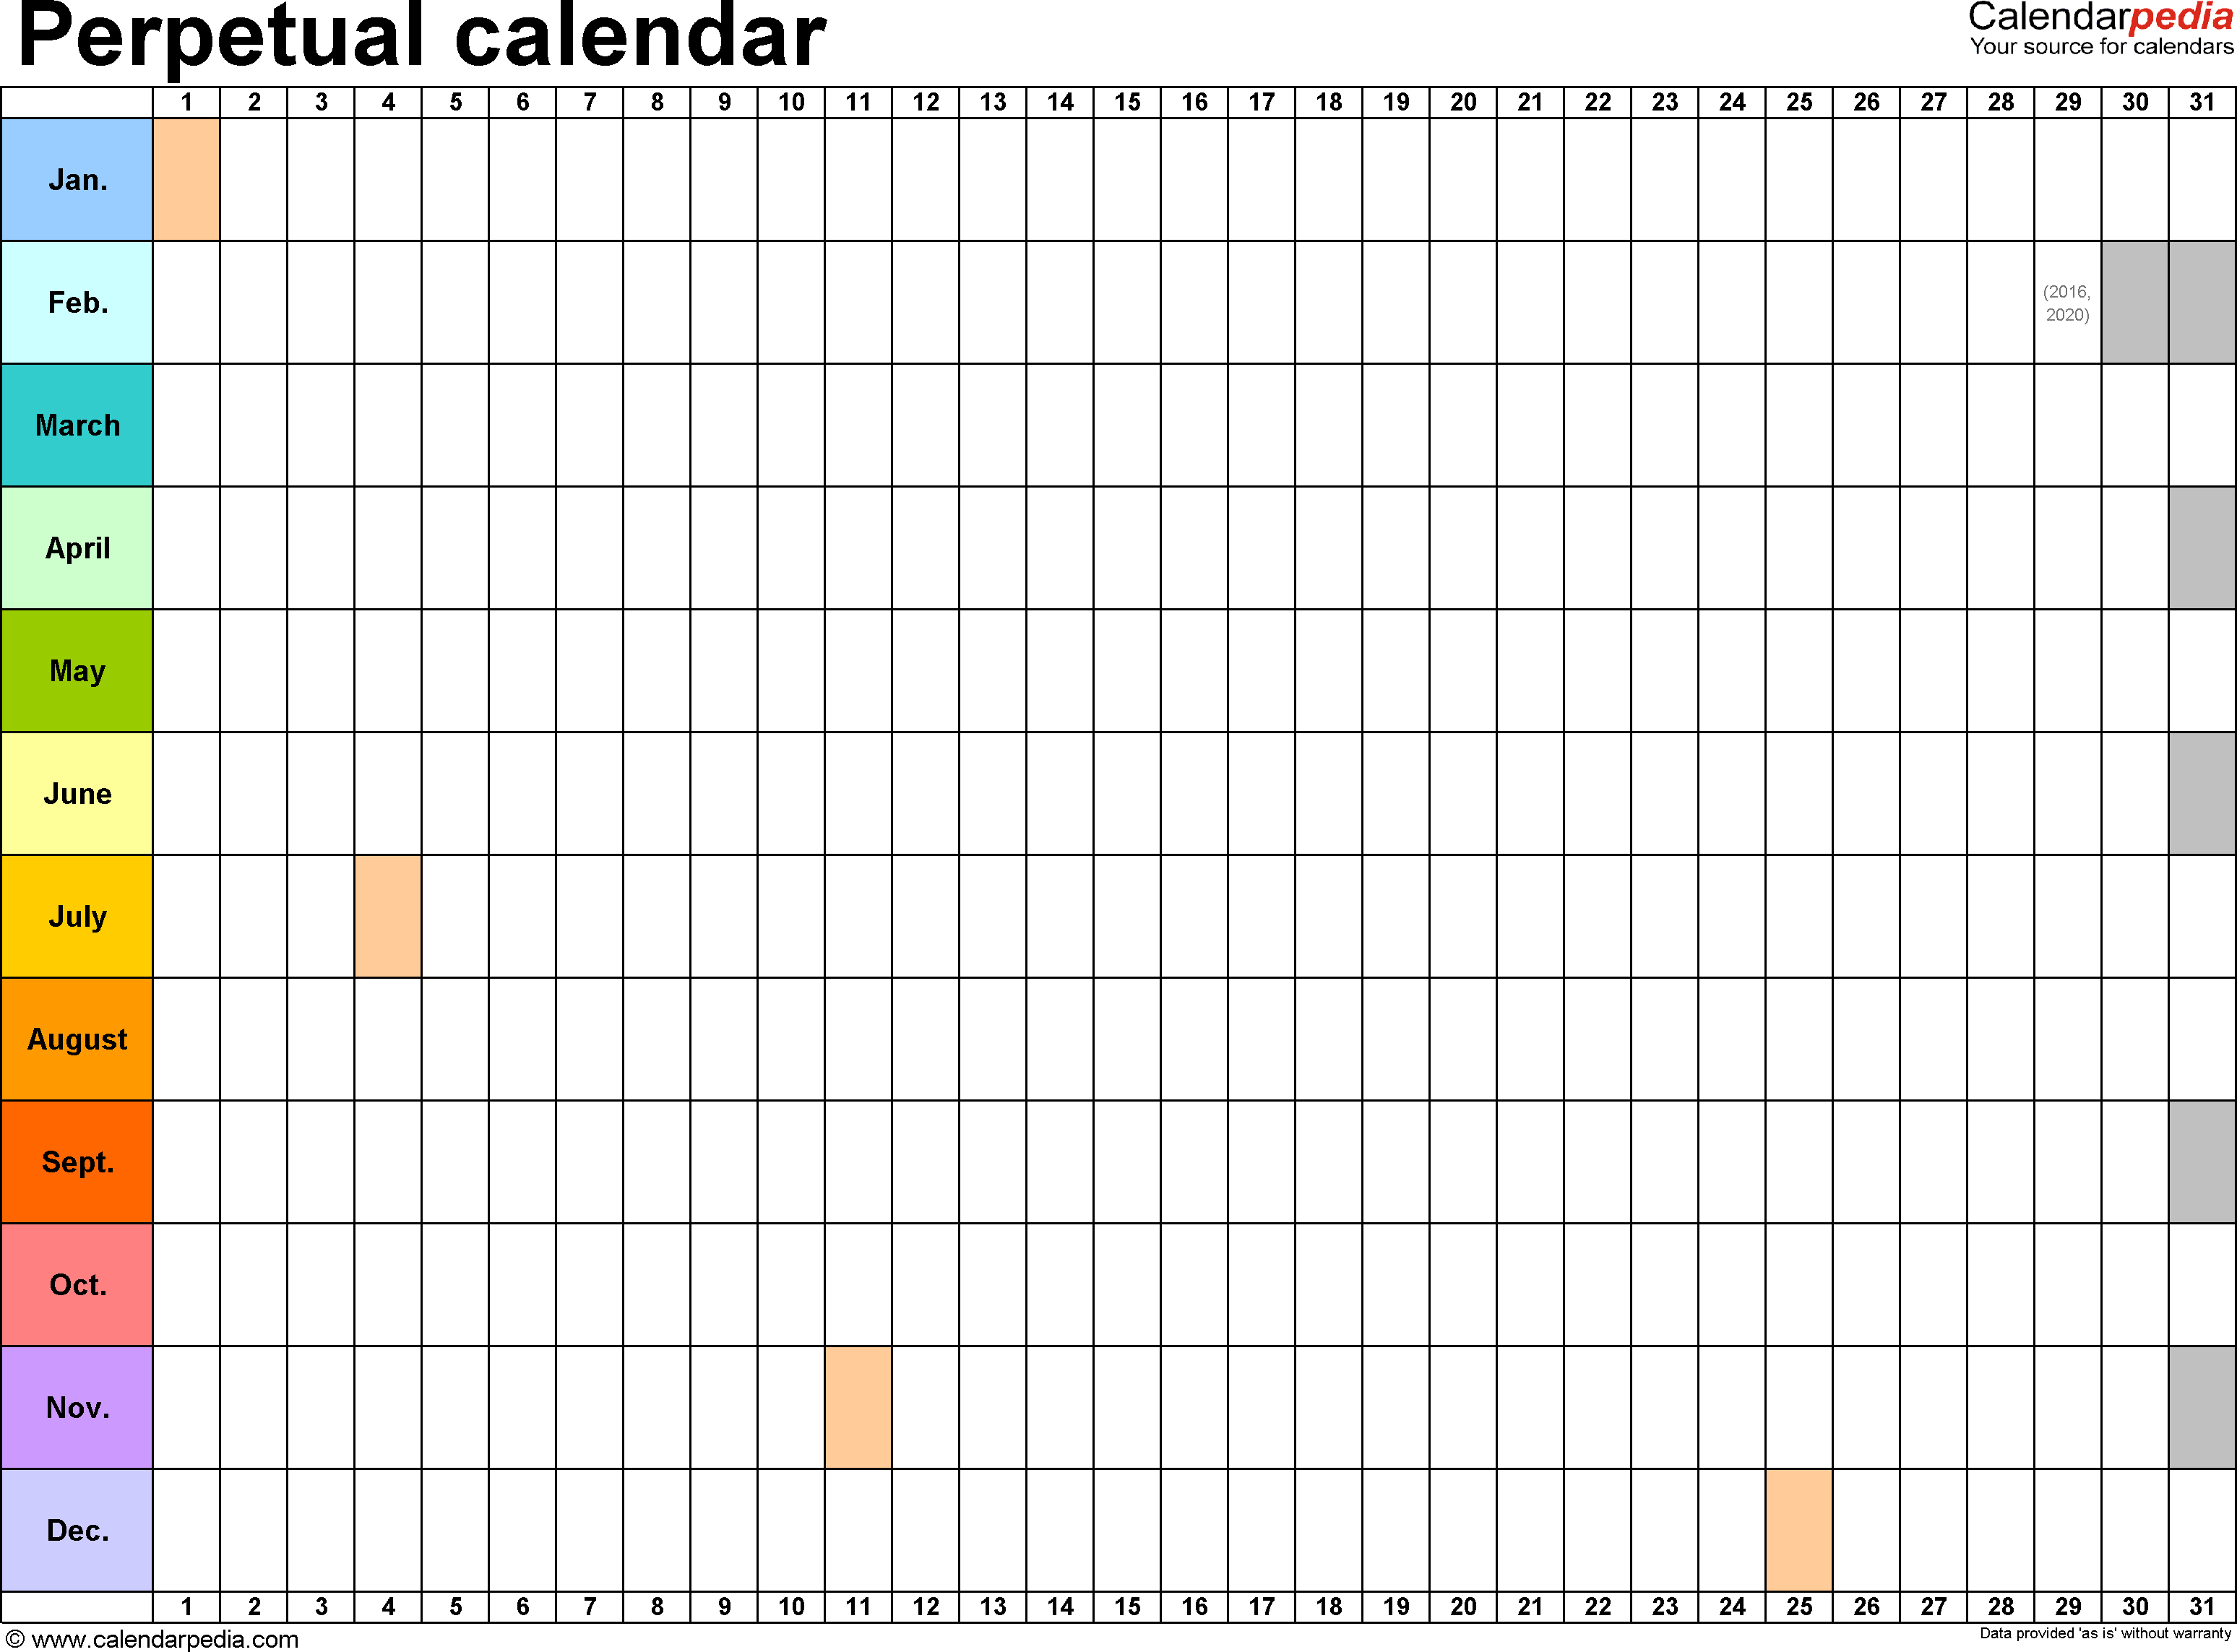 Perpetual Calendars - 7 Free Printable Excel Templates throughout Free Printable Perpetual Calendar Templates